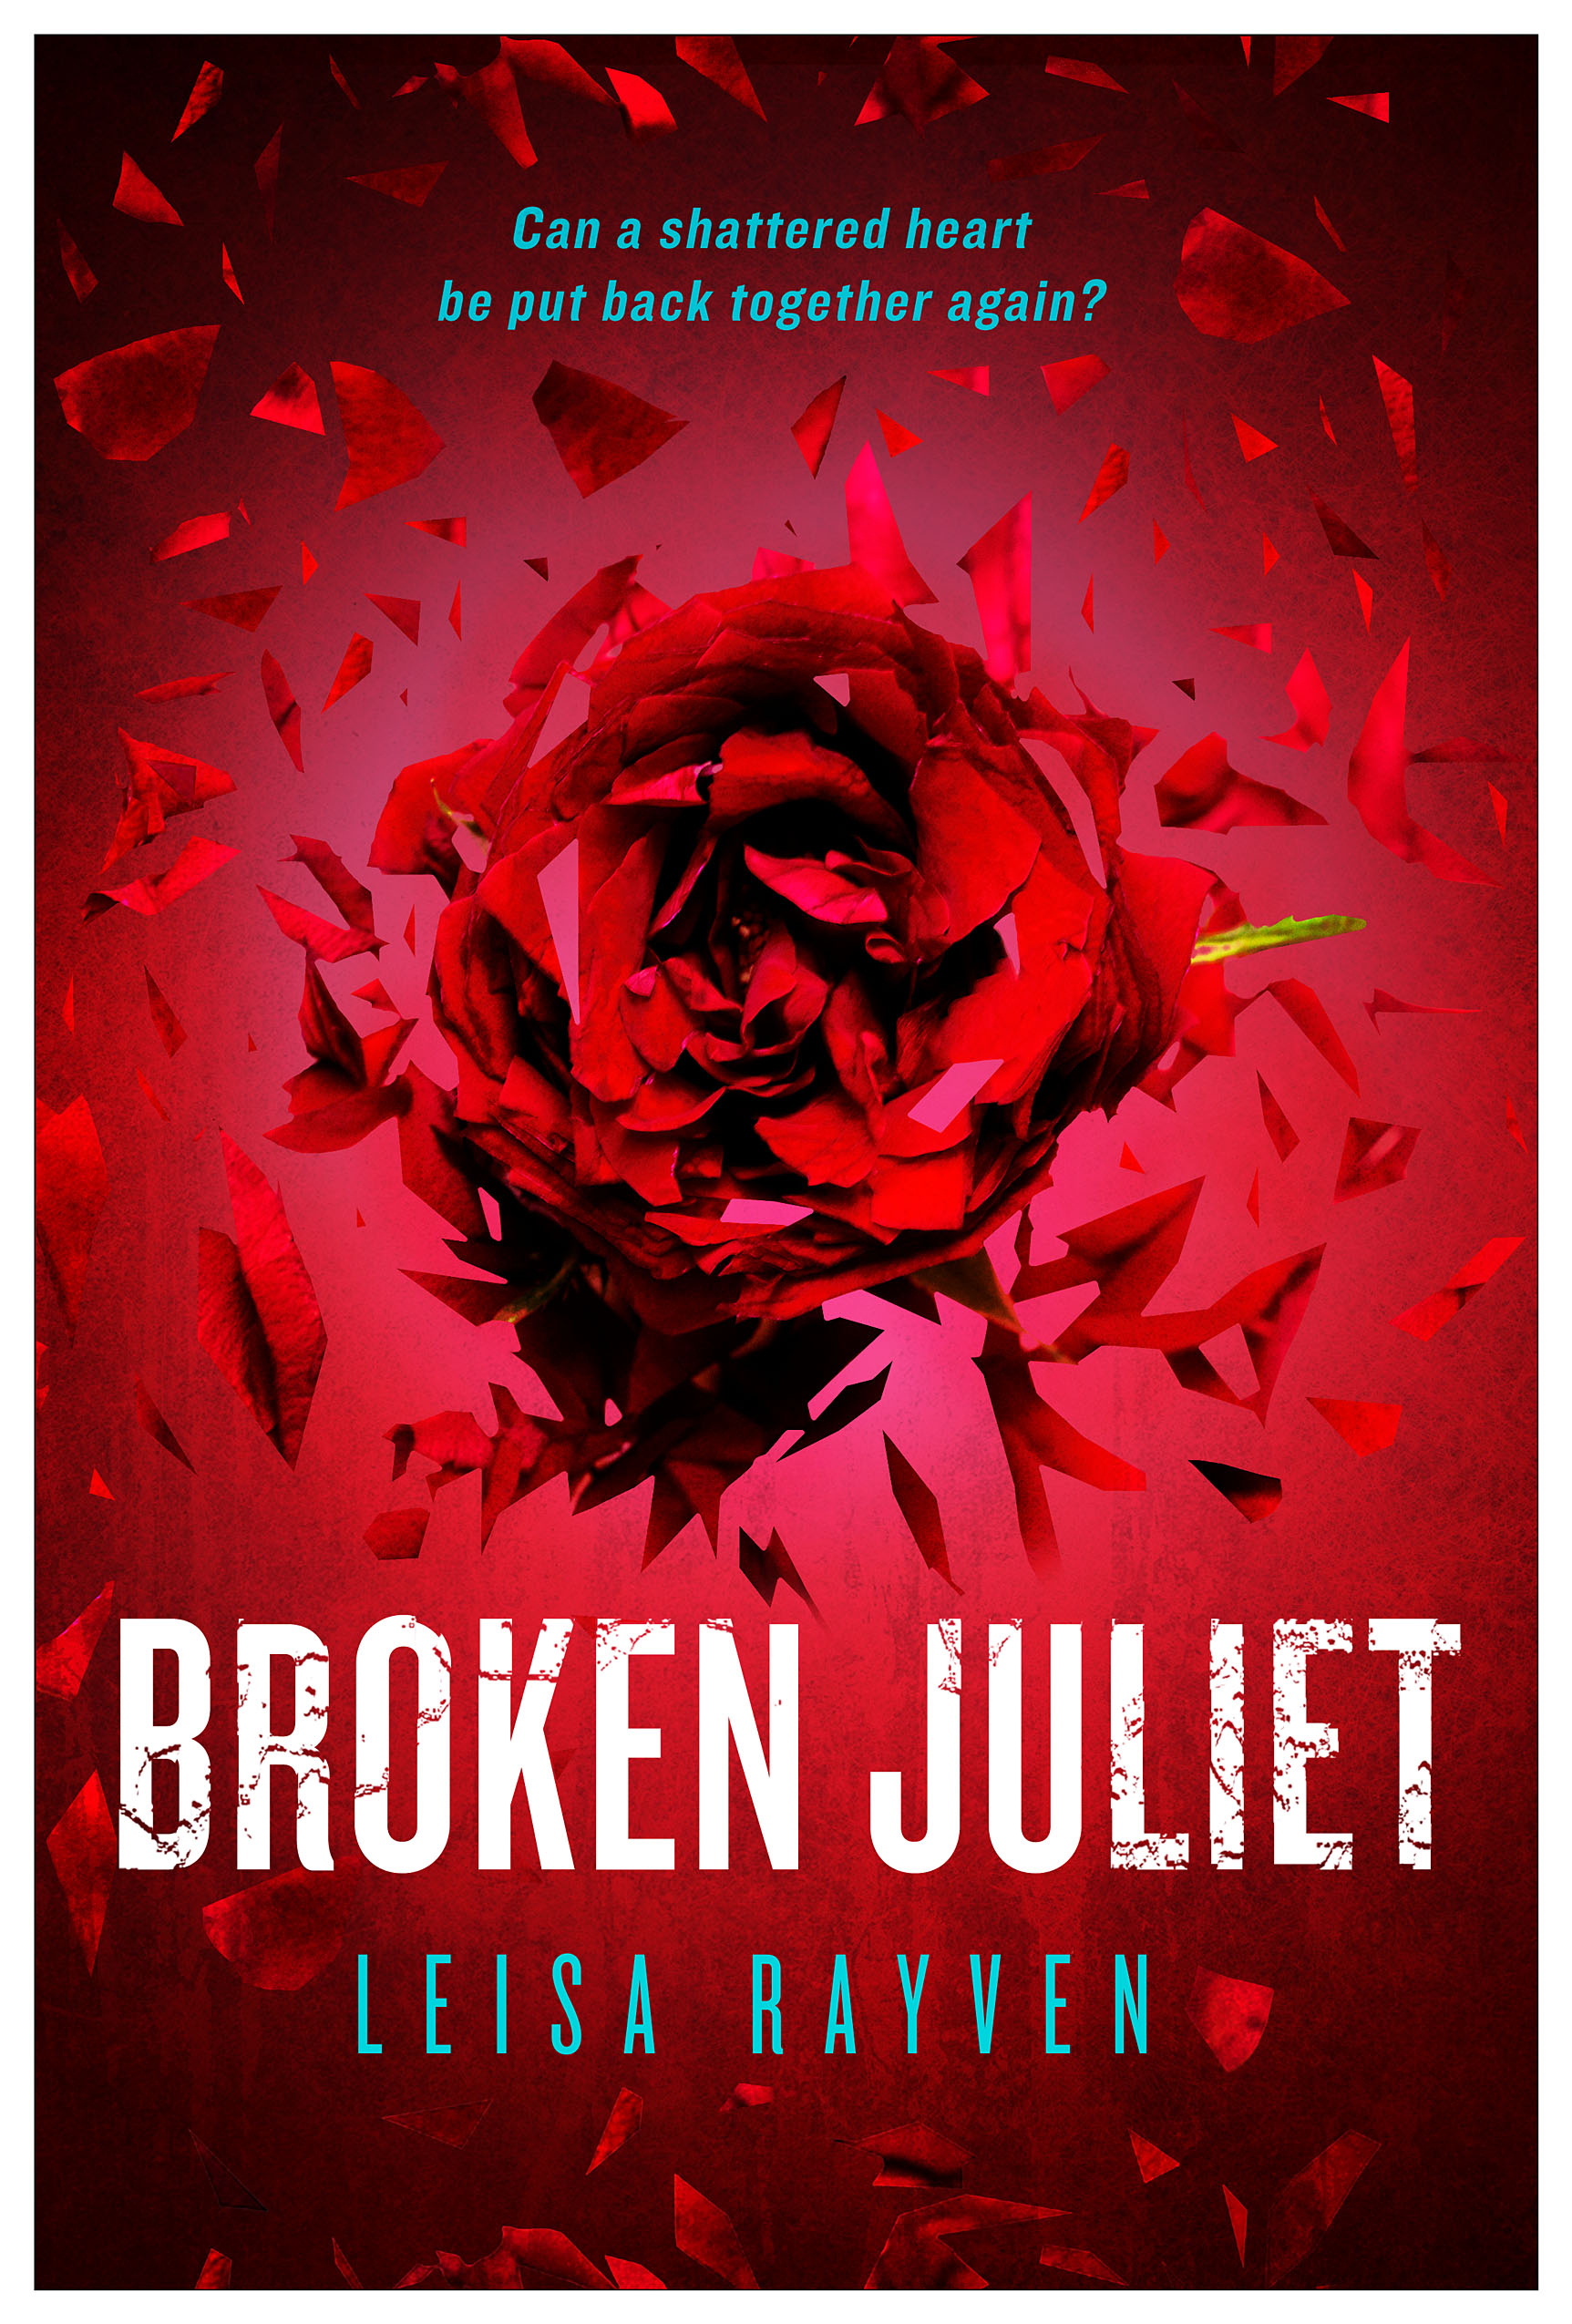 https://www.dropbox.com/s/b9w85cjp9rnscxh/2.%20broken%20juliet.pdf?dl=0